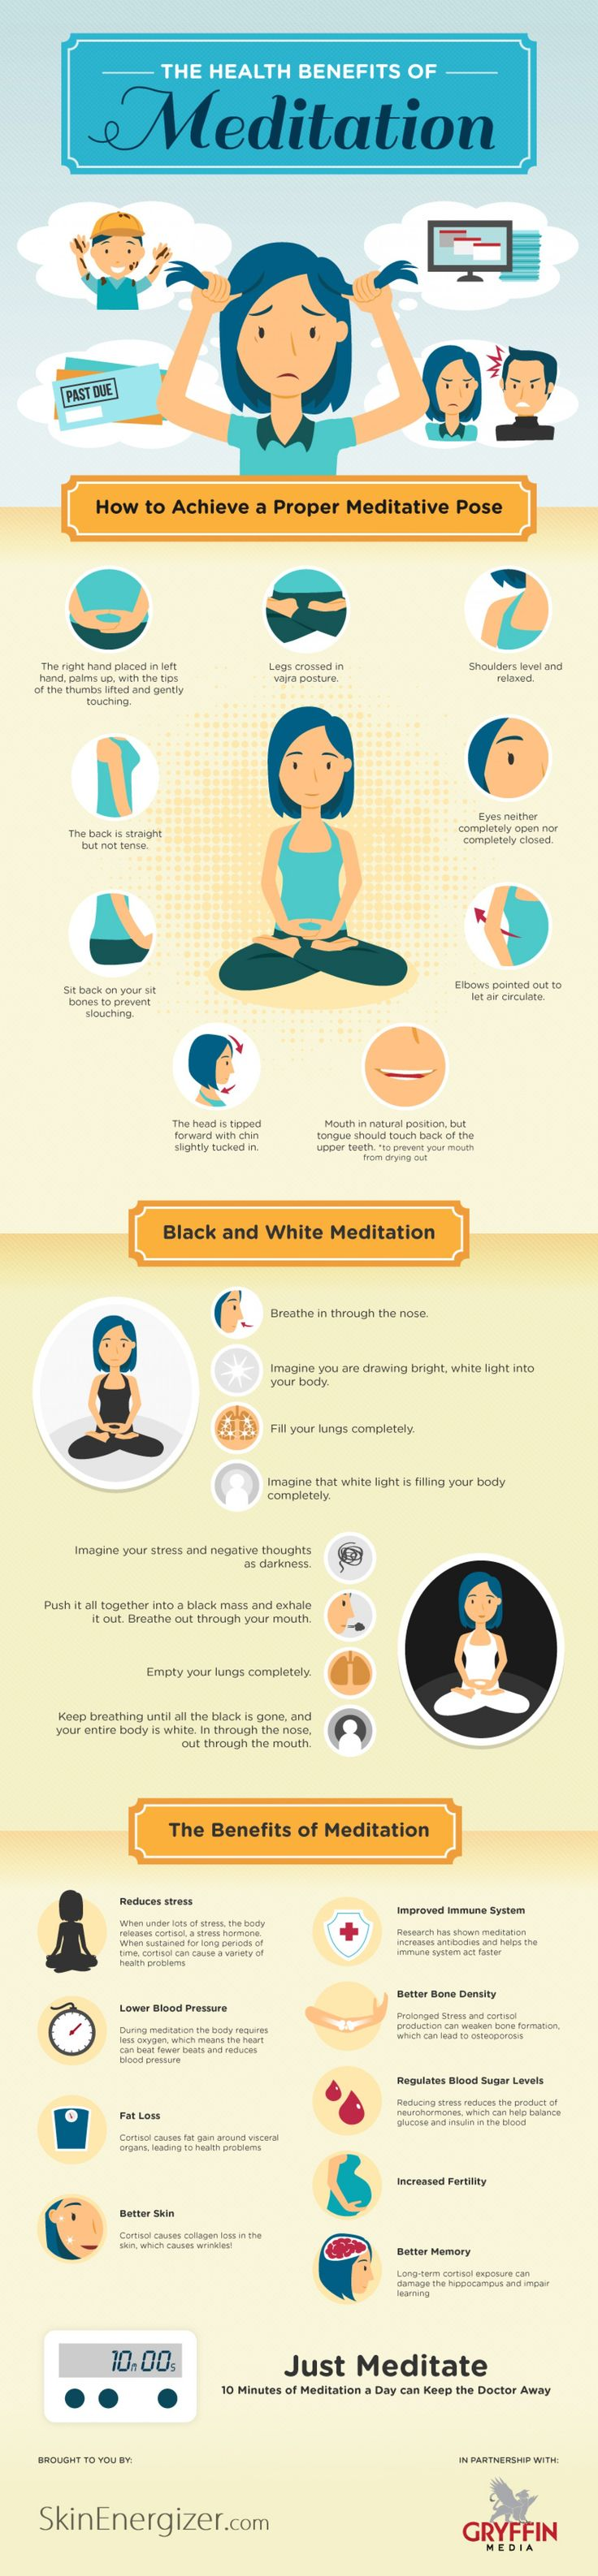 The Health in Meditation   #Infographic #Health #Meditation